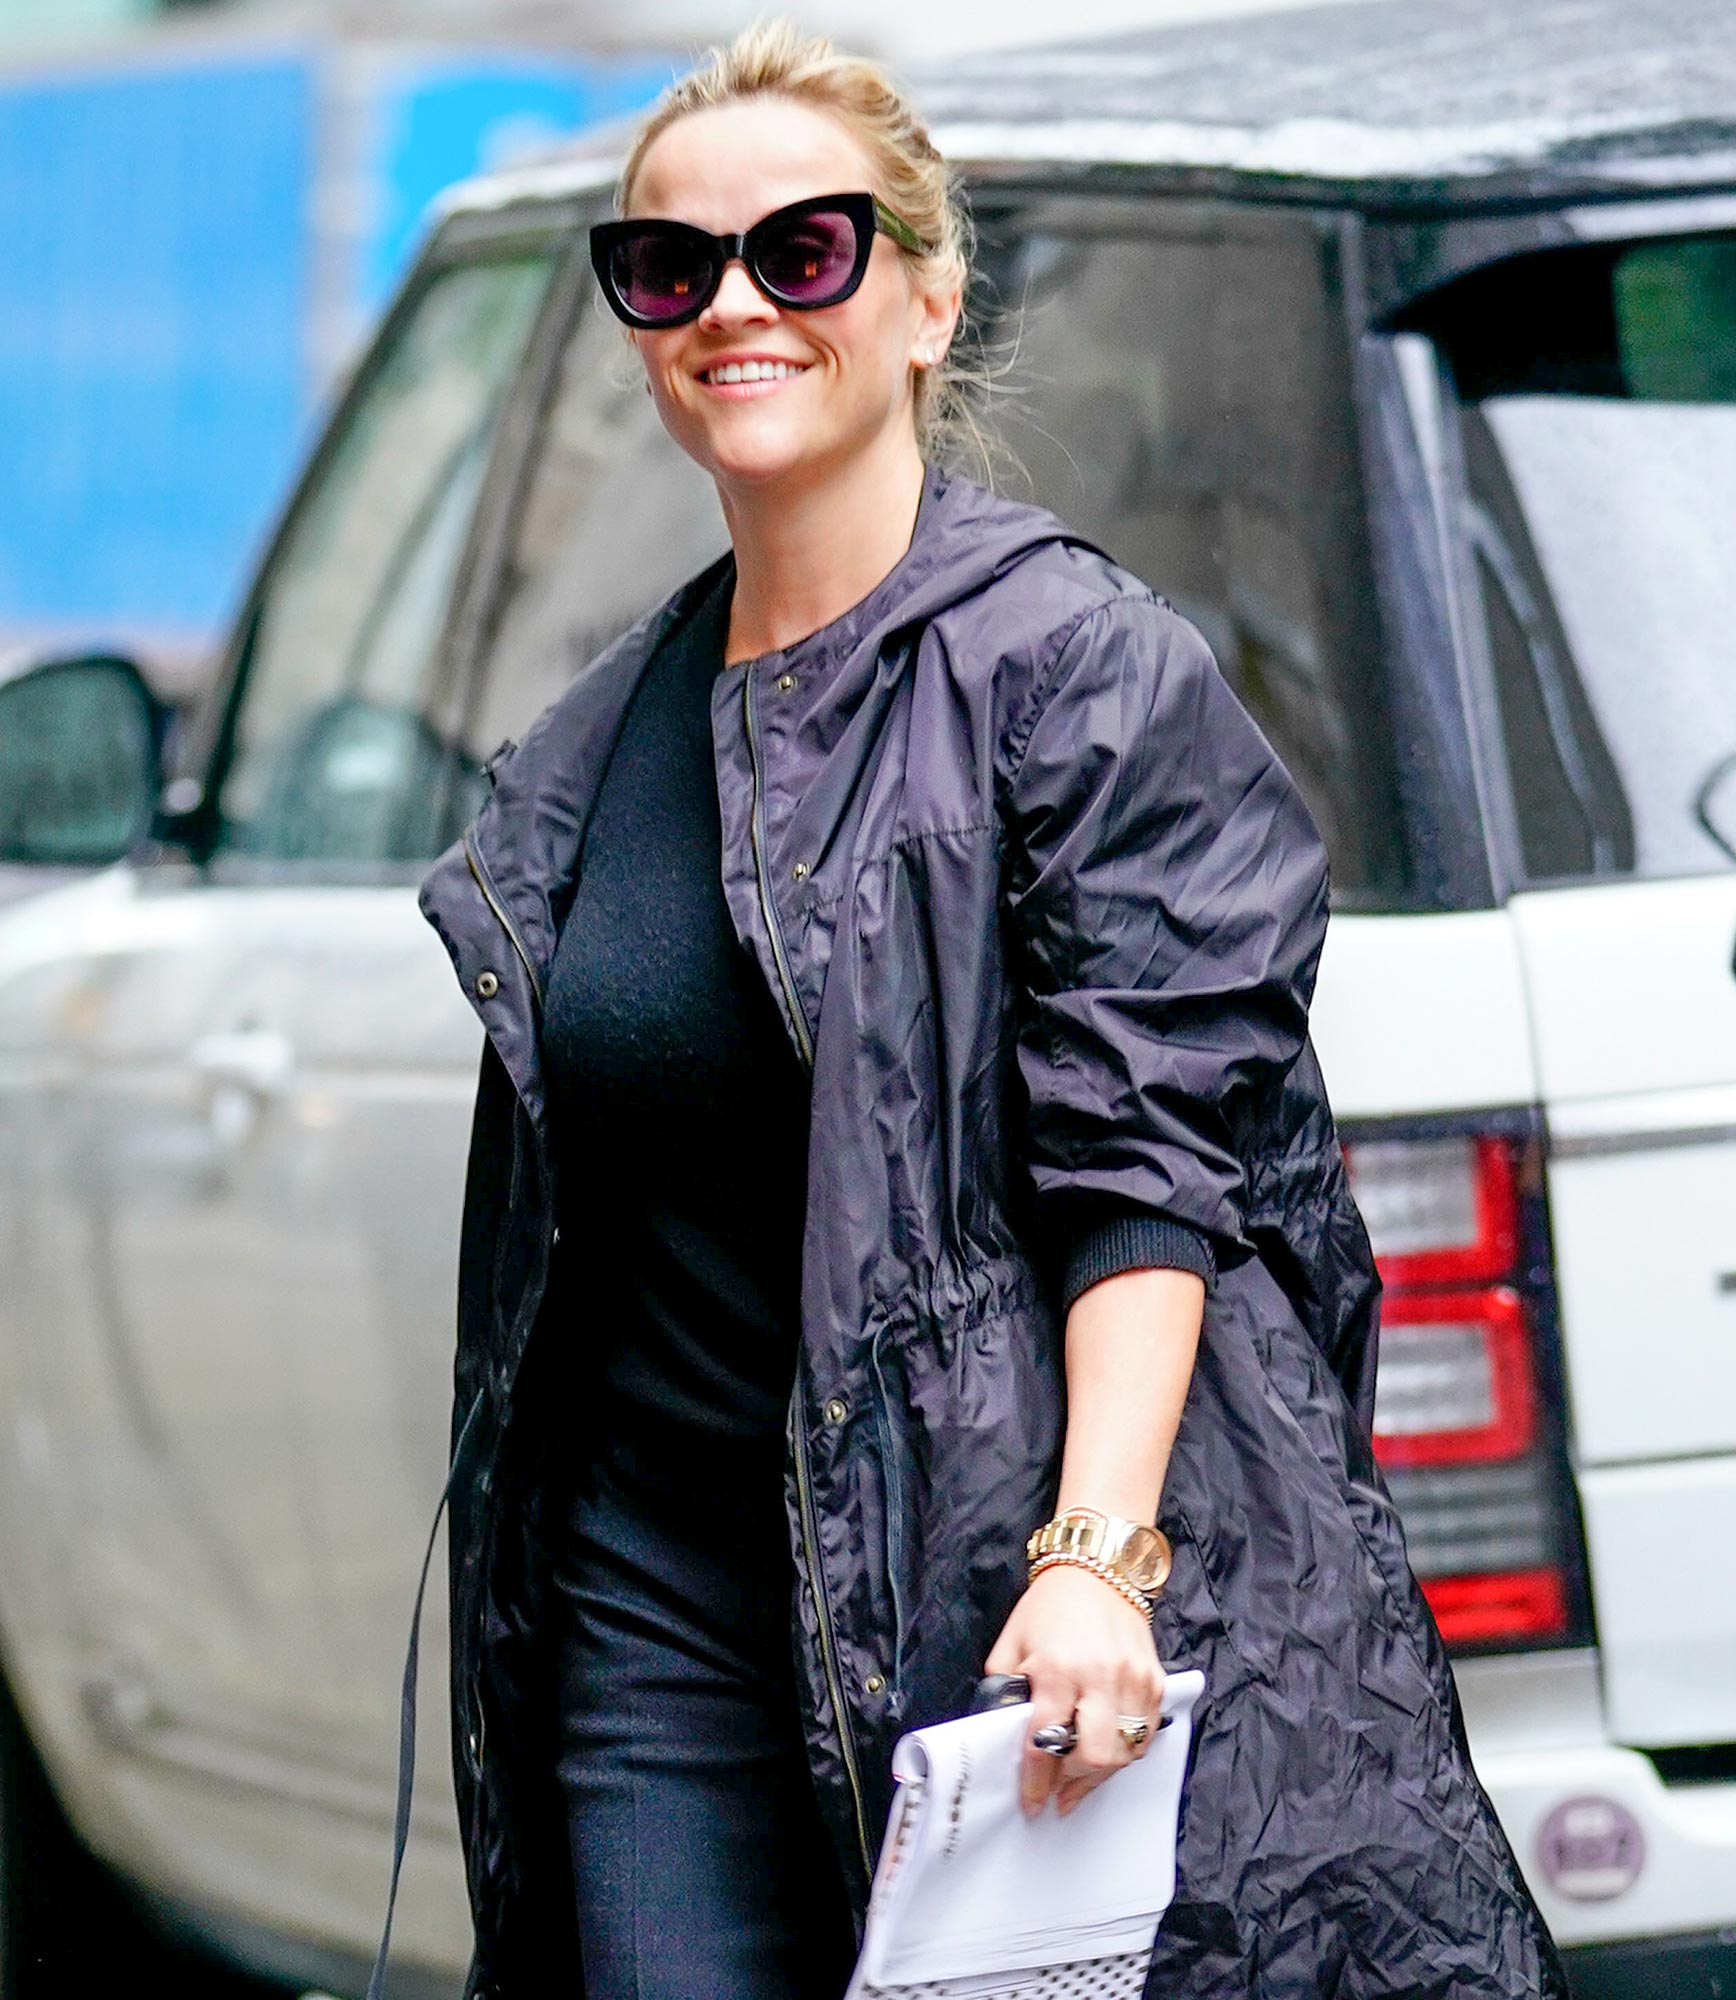 Reese Witherspoon out and about in the Rain in New York